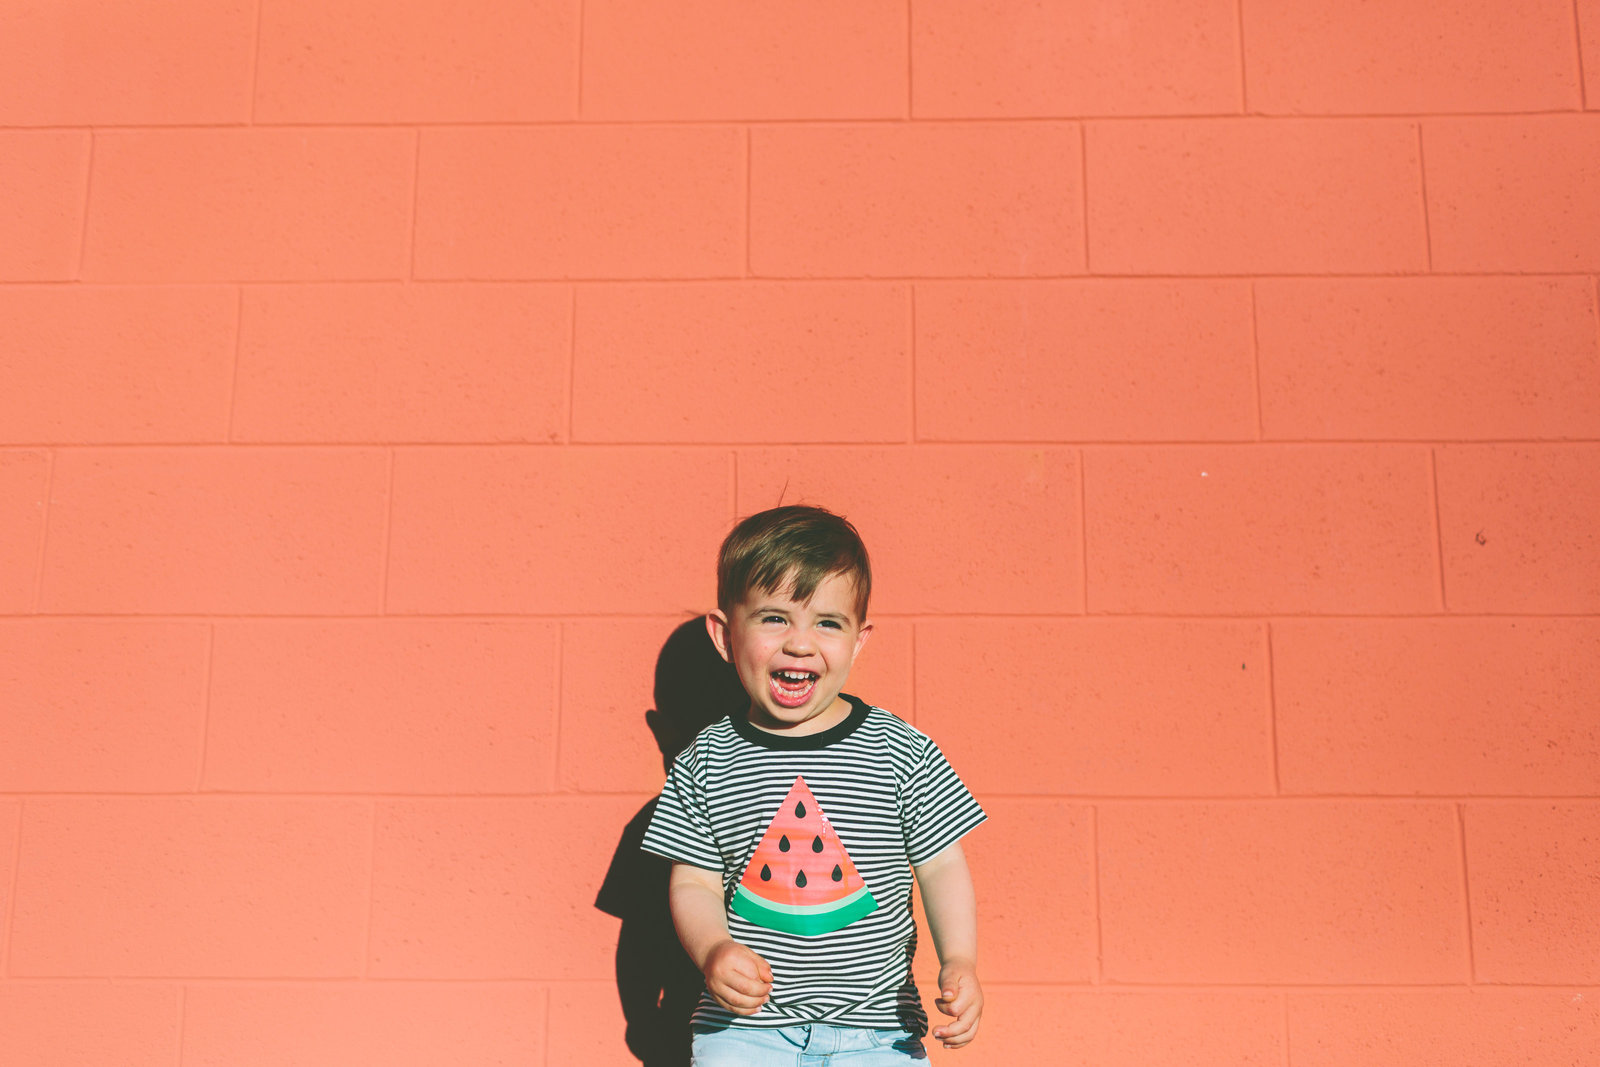 wall-summer-child-boy-smiling-toddler-happy-laughing_t20_d1K863